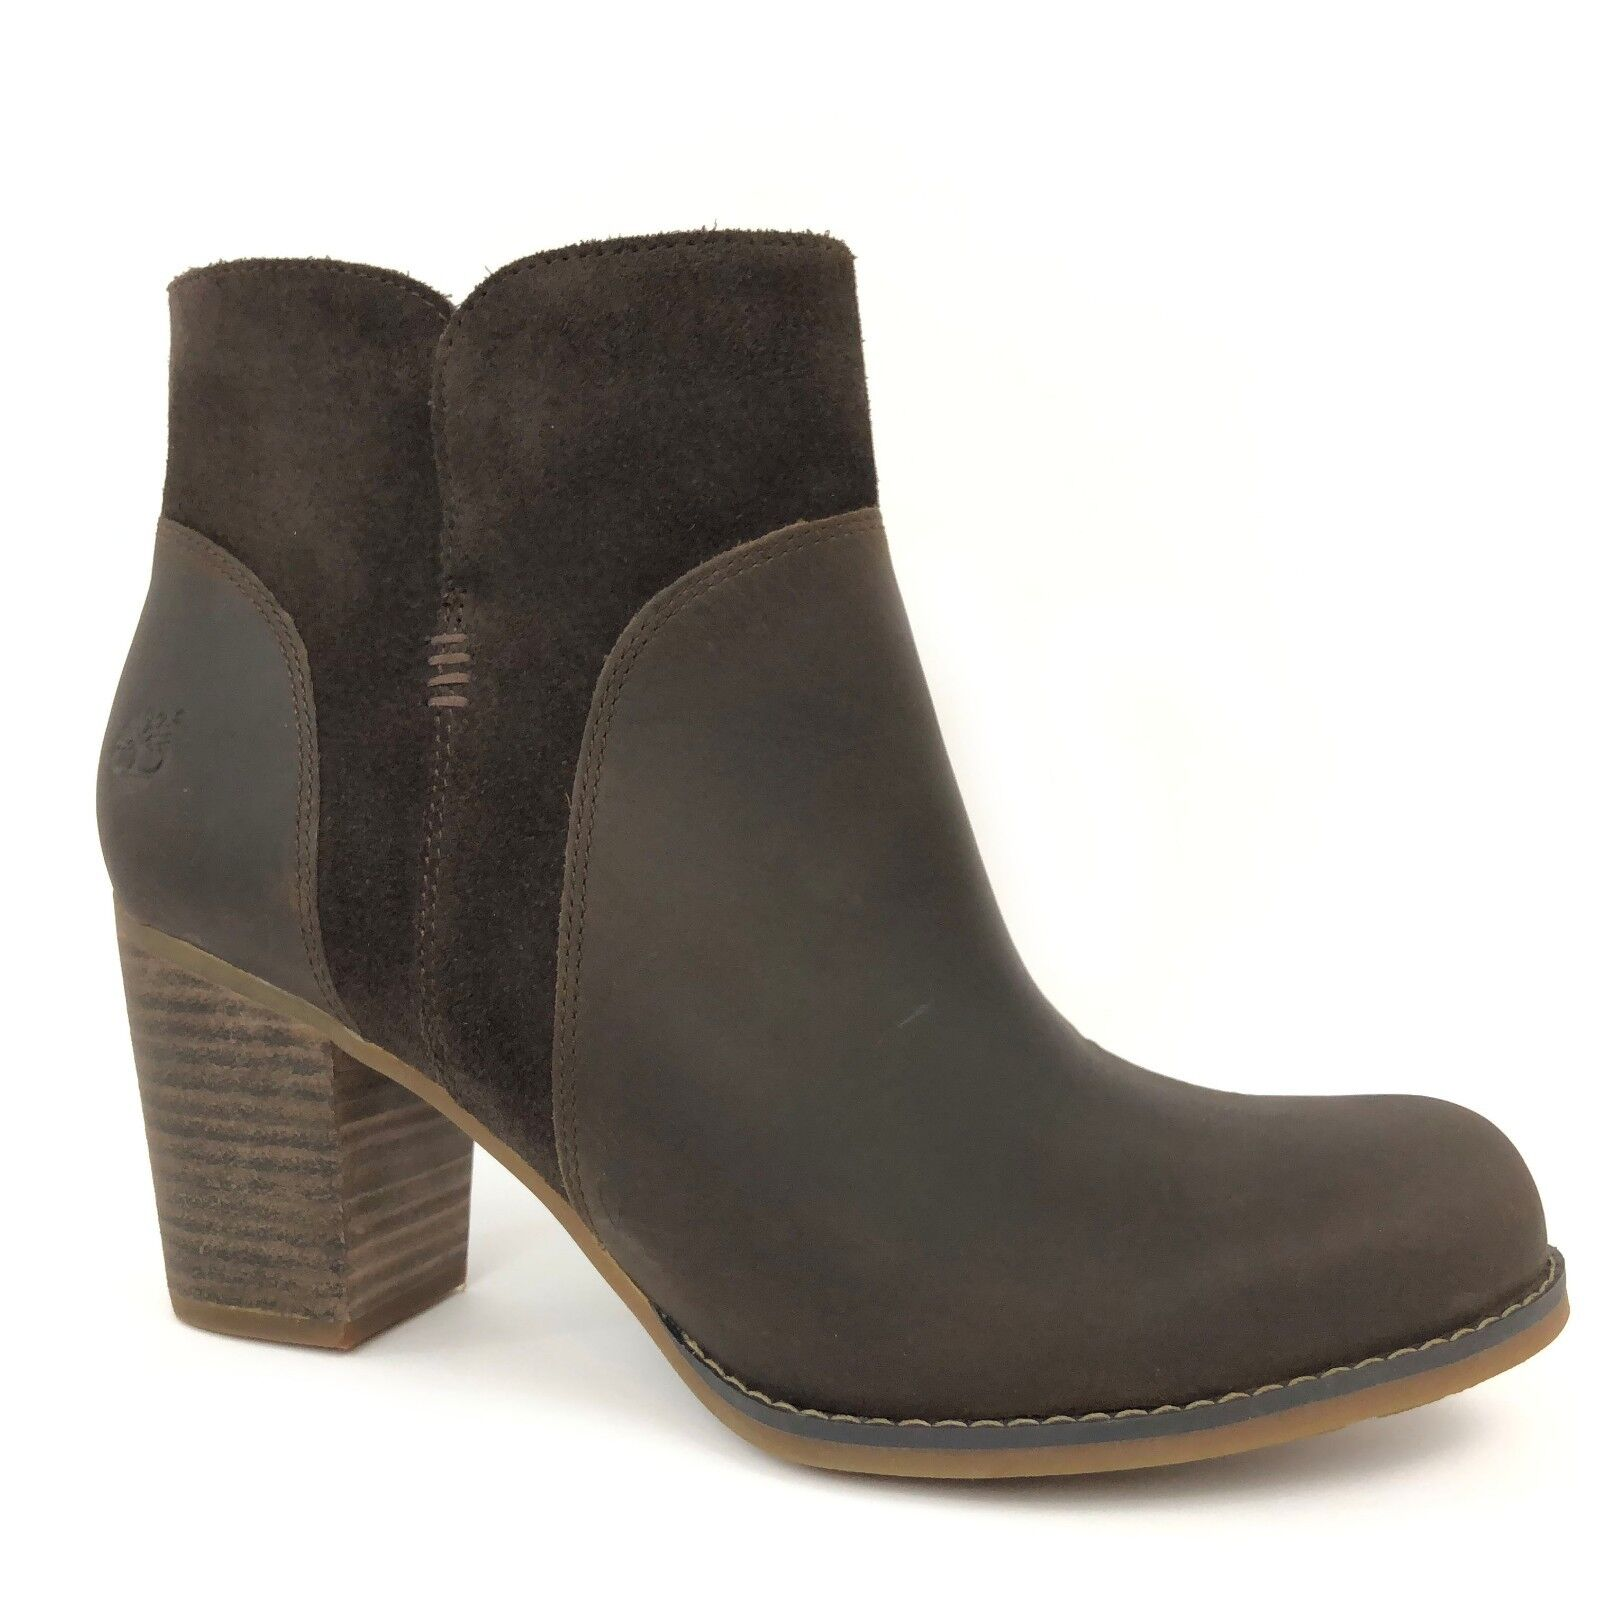 Timberland Women's Rudston Dark Brown Leather Ankle Heeled Boots A1621